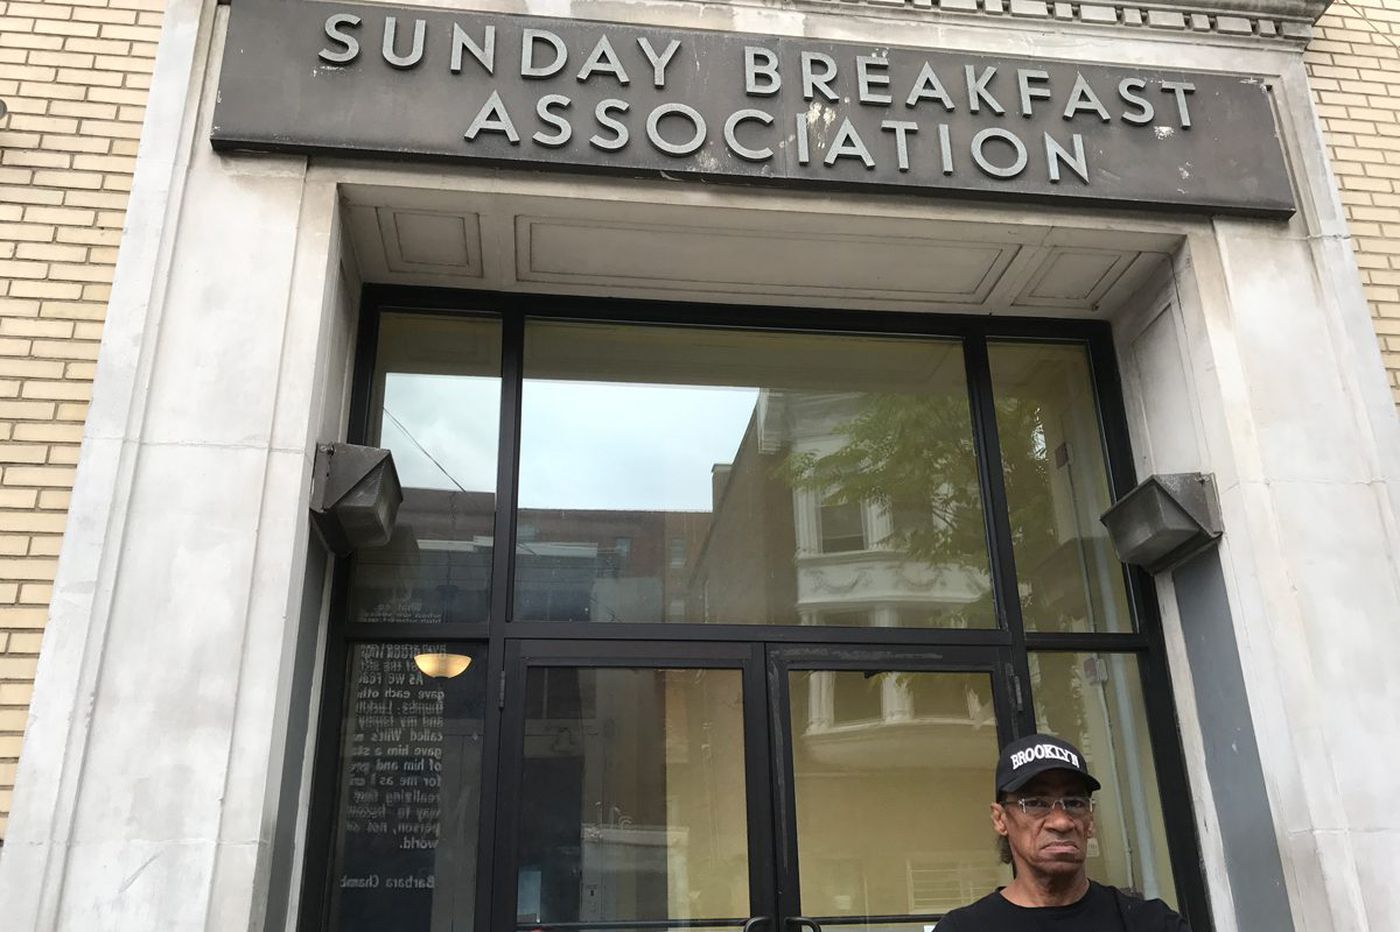 Man stabbed to death in front of breakfast crowd at Philly homeless shelter